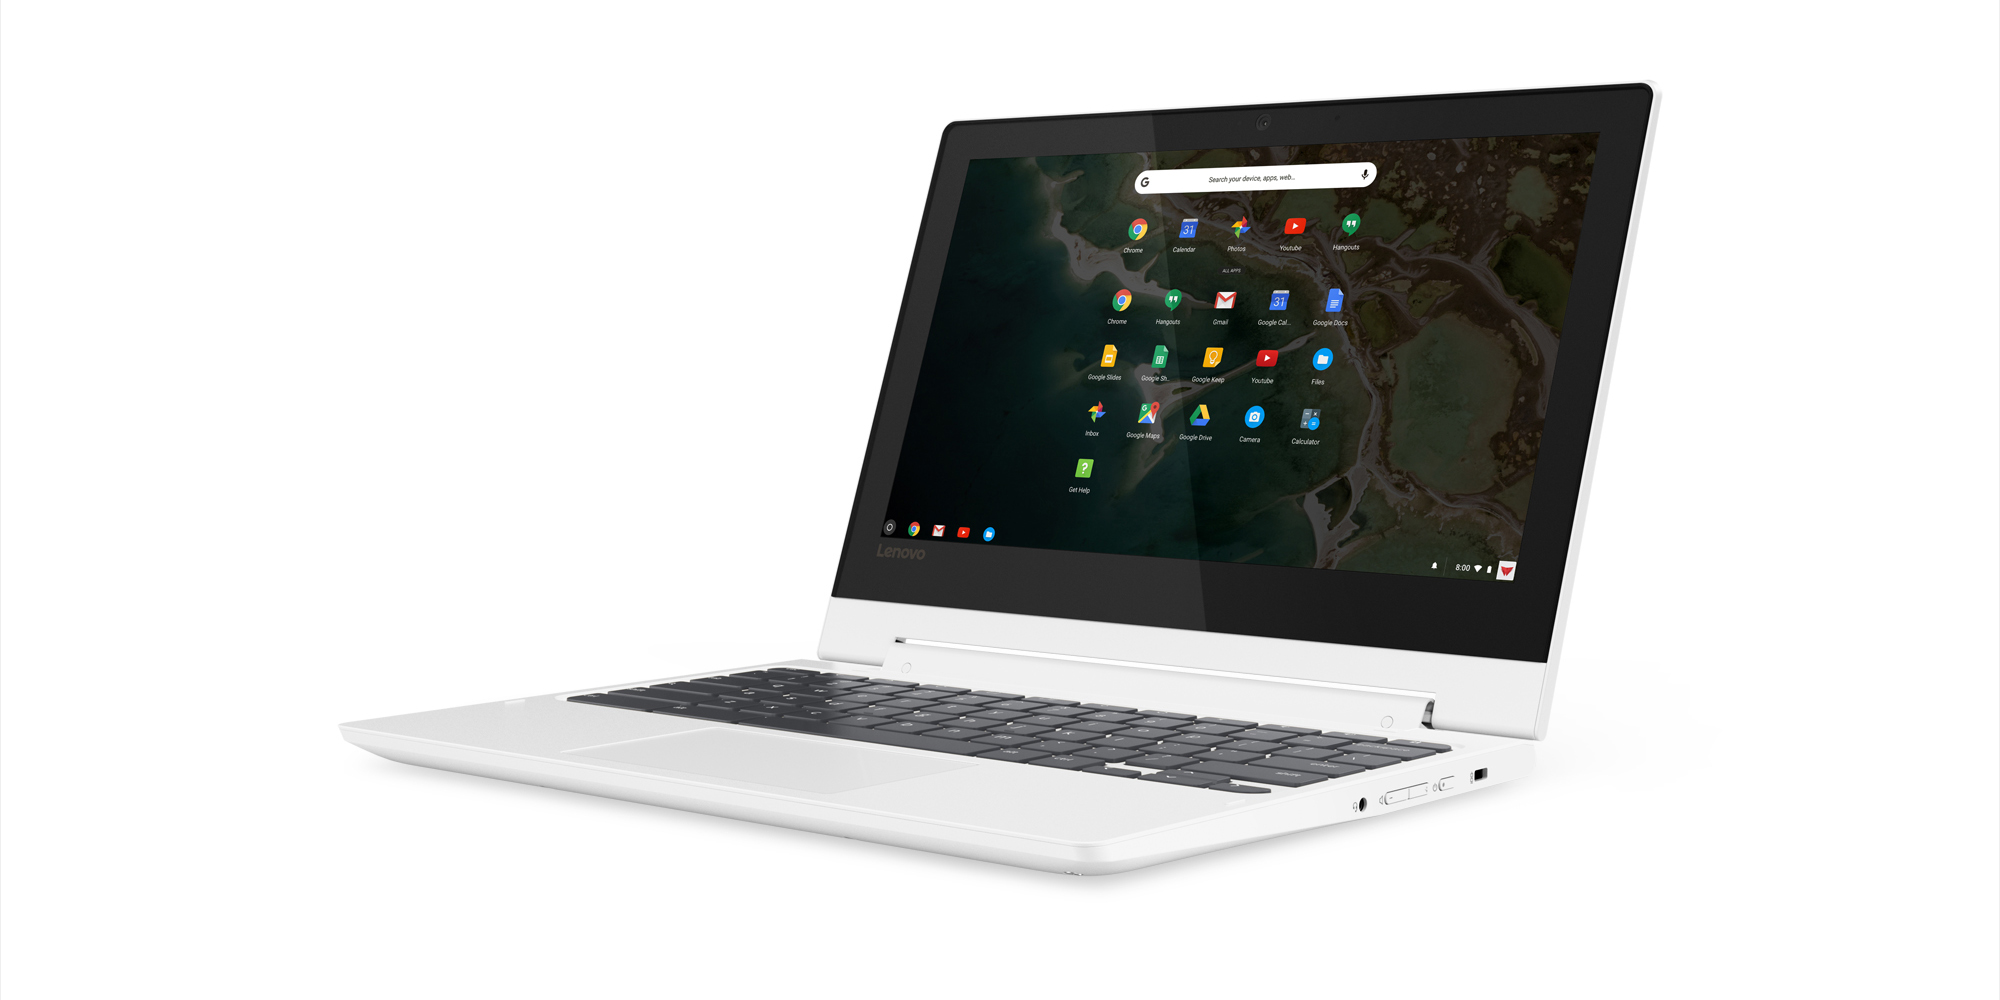 Lenovo unveils affordable Chromebook C330 and Chromebook S330 starting at just $249